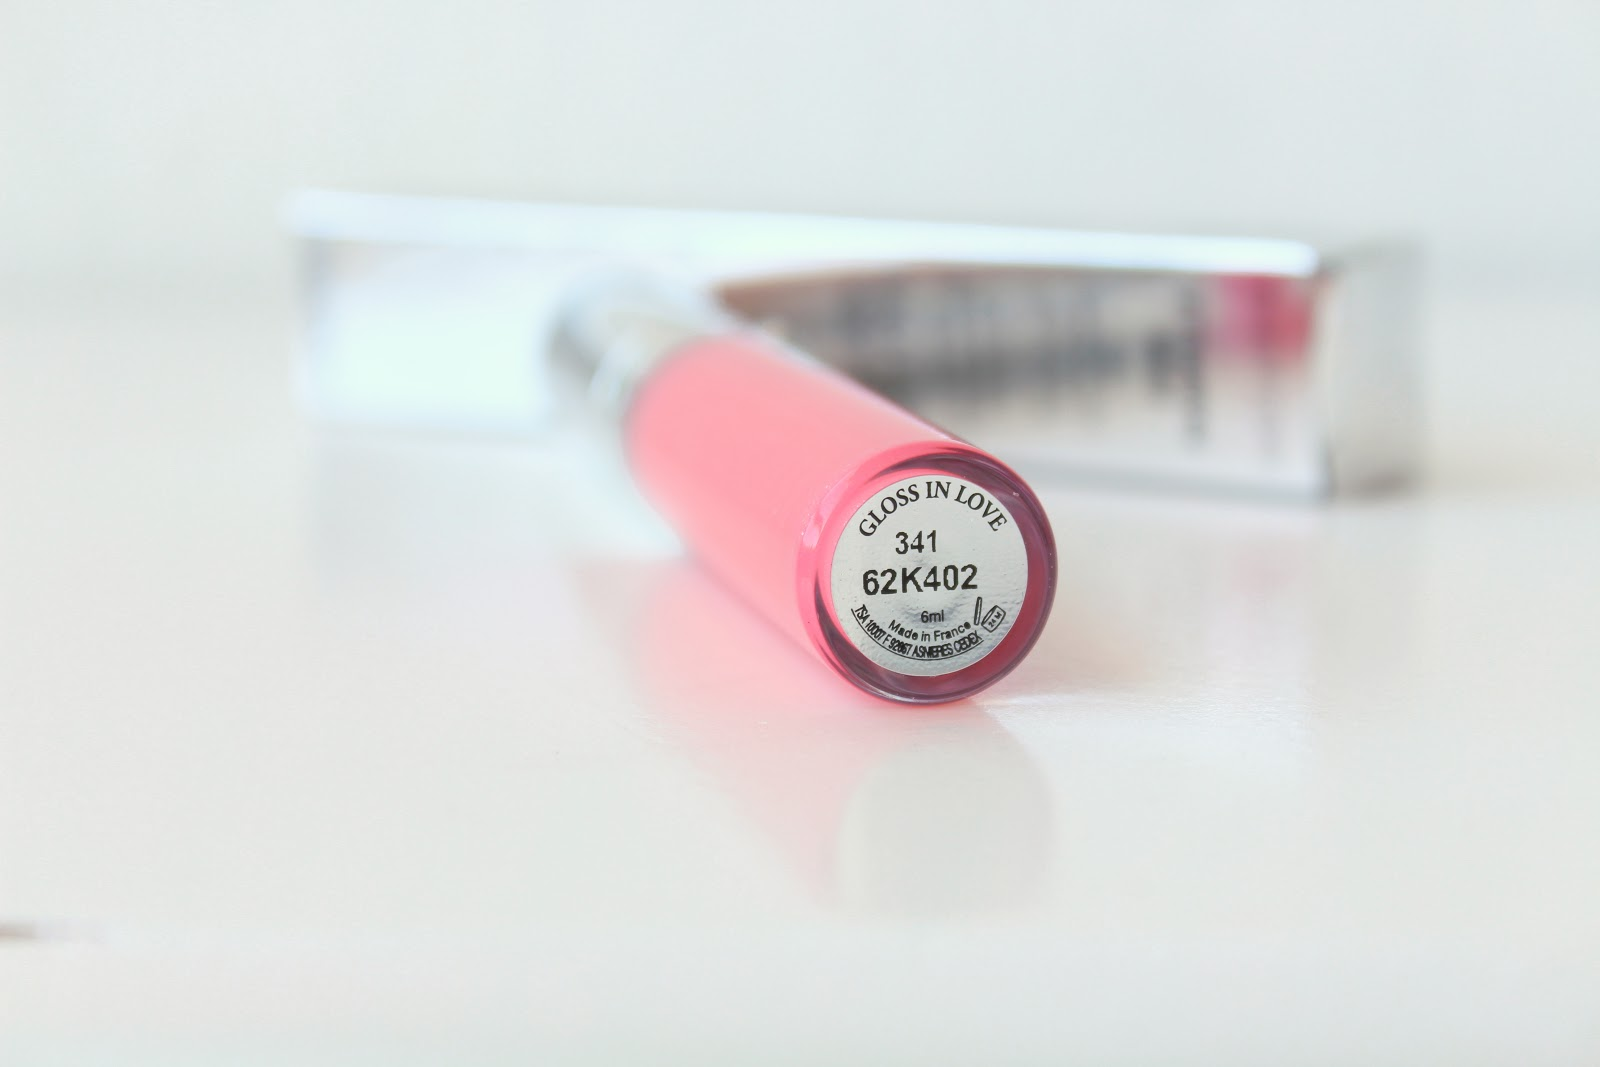 Lancome Gloss In Love Review